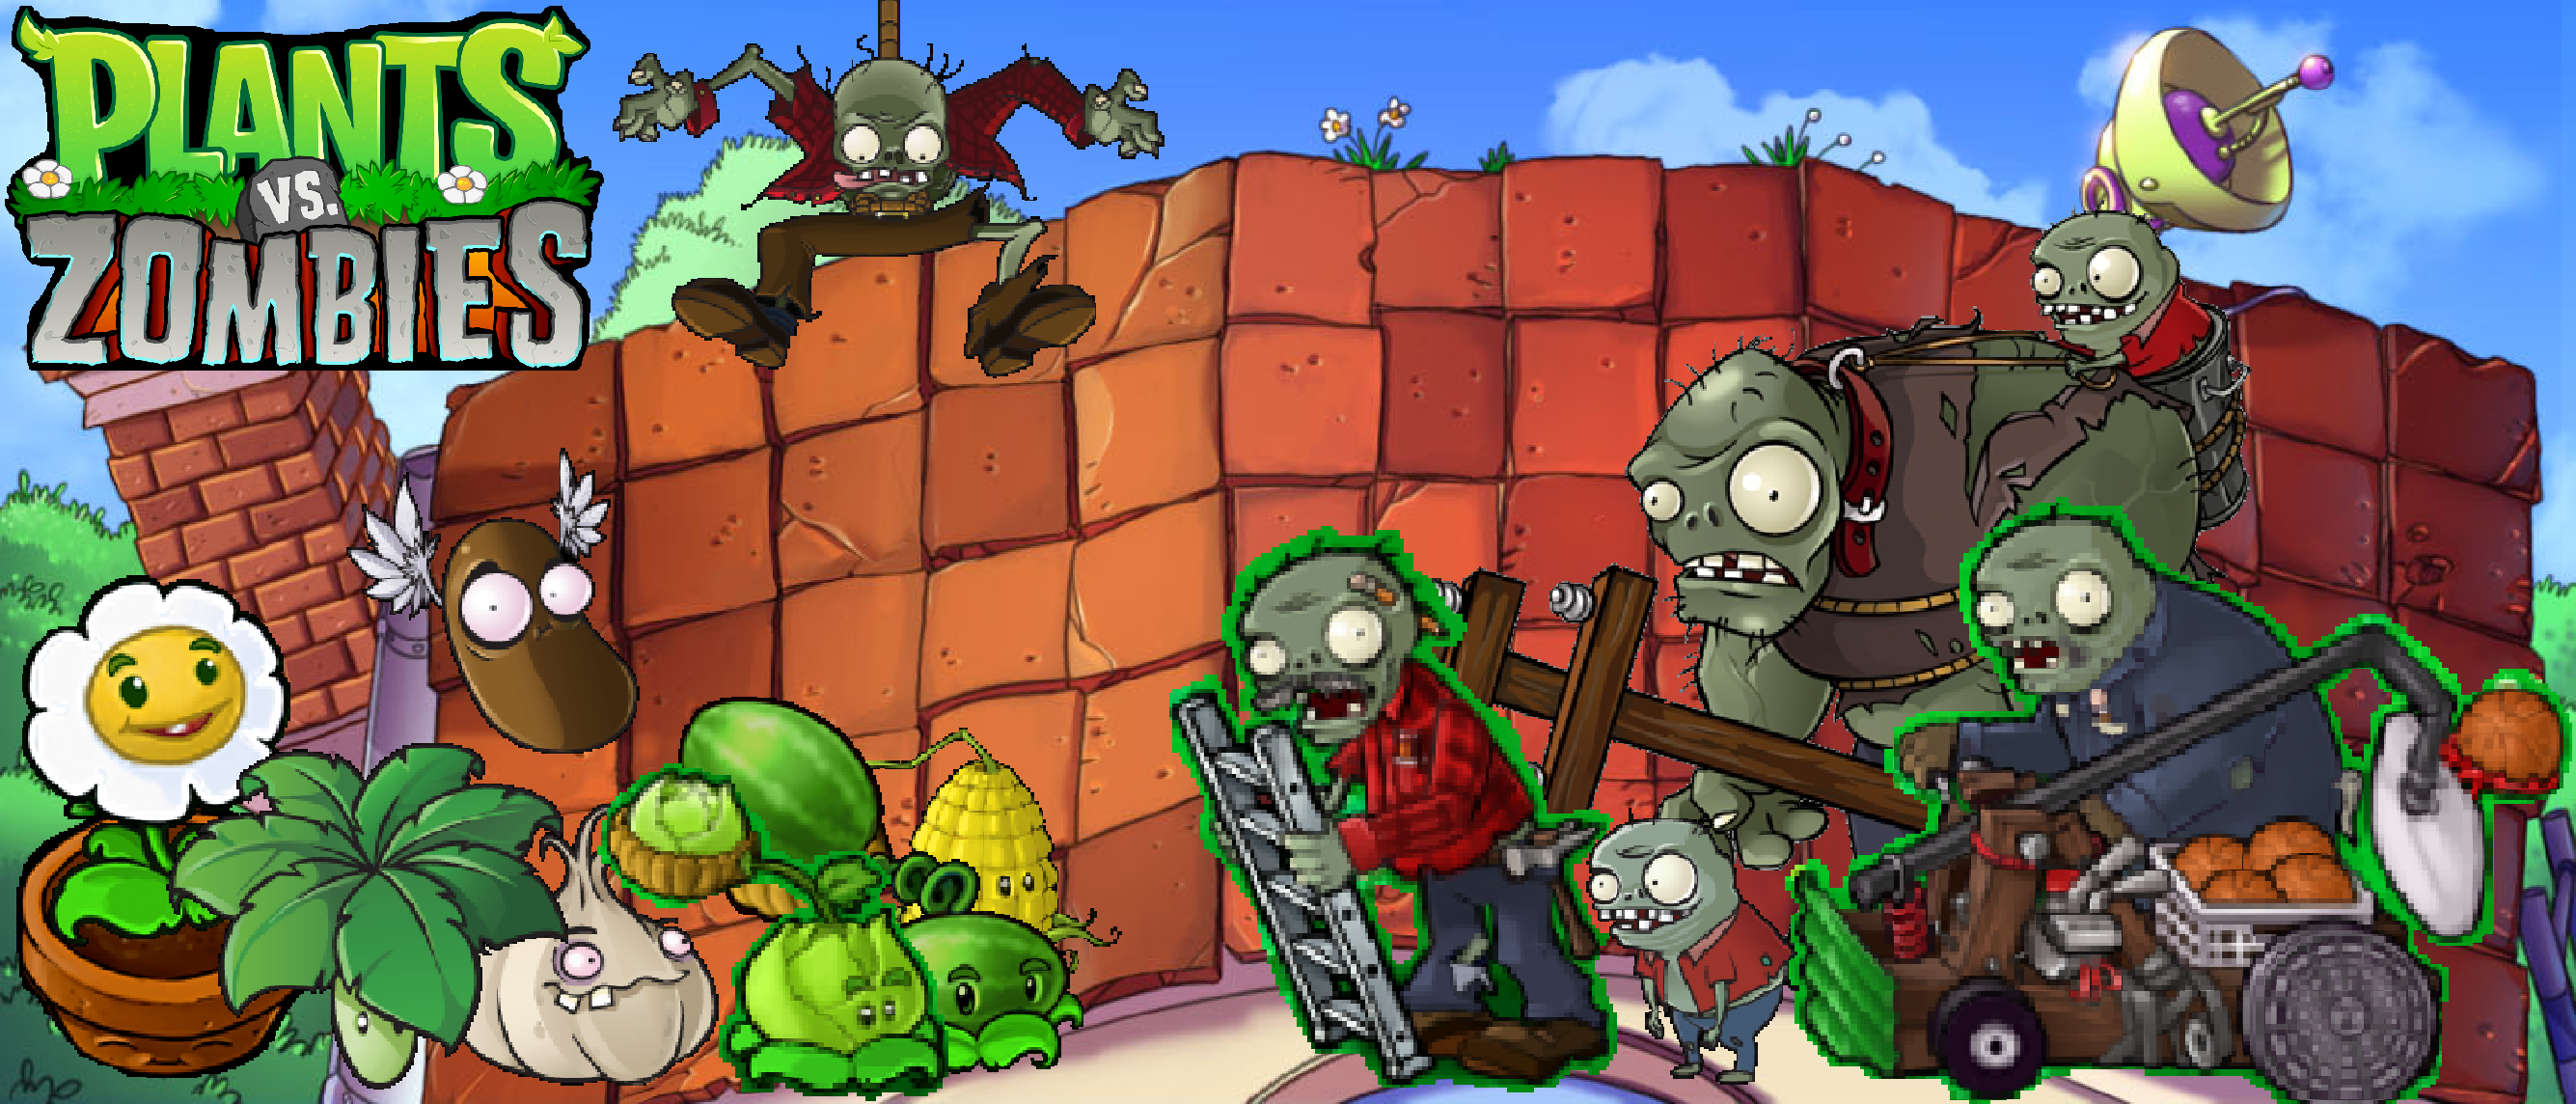 plants vs zombies roof wallpaperphotographerferd on deviantart